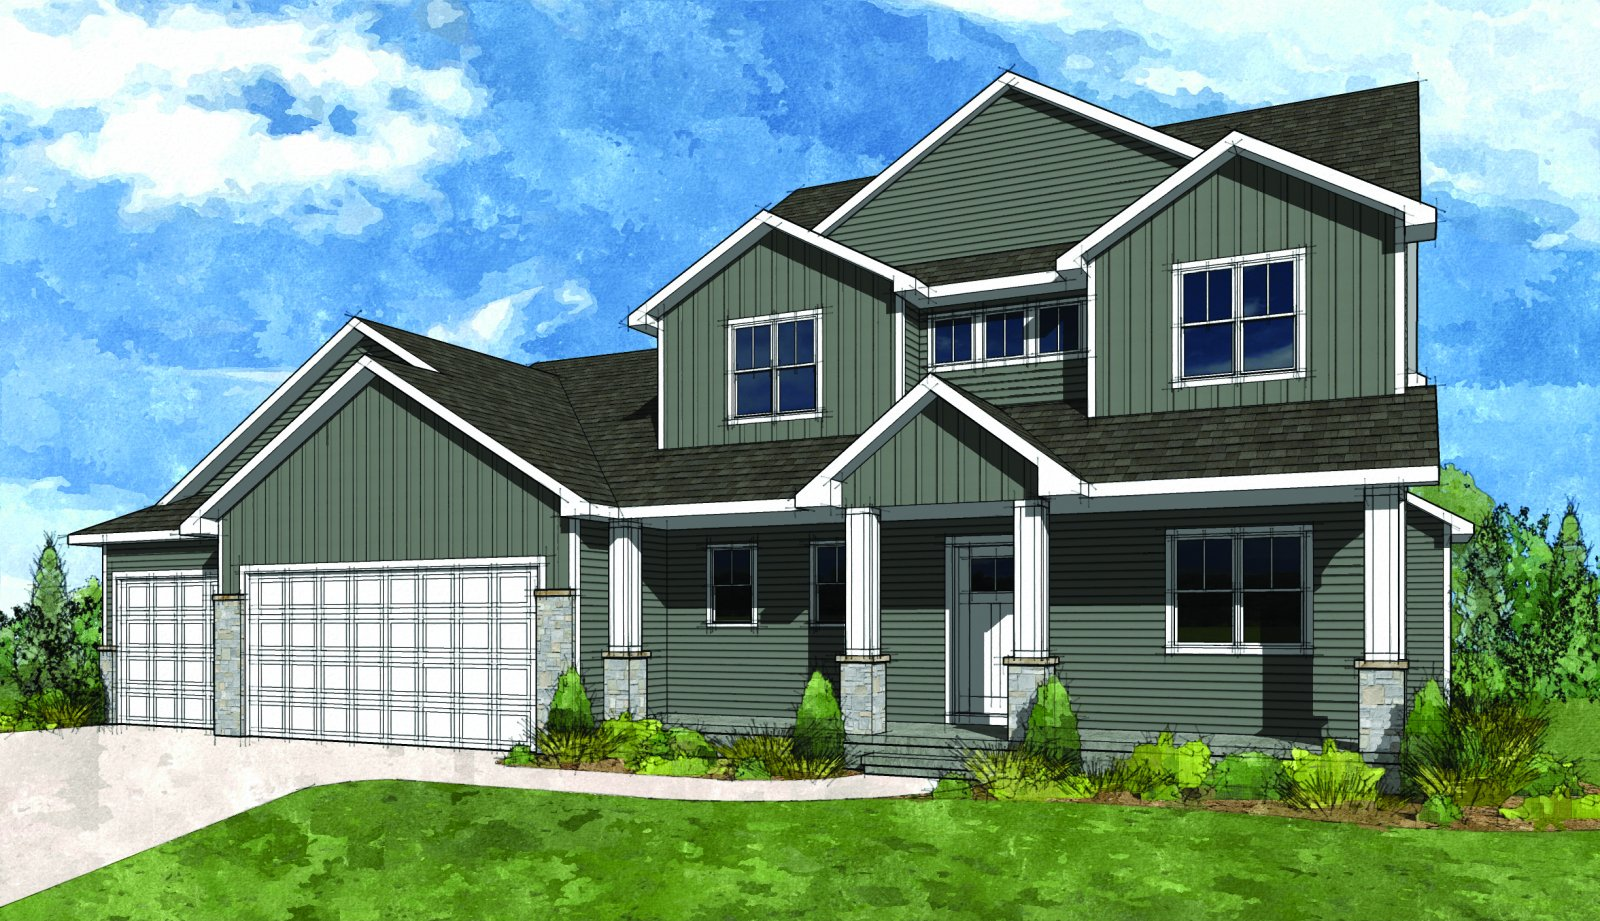 Fox cities hba parade of homes for Two story farmhouse oak park